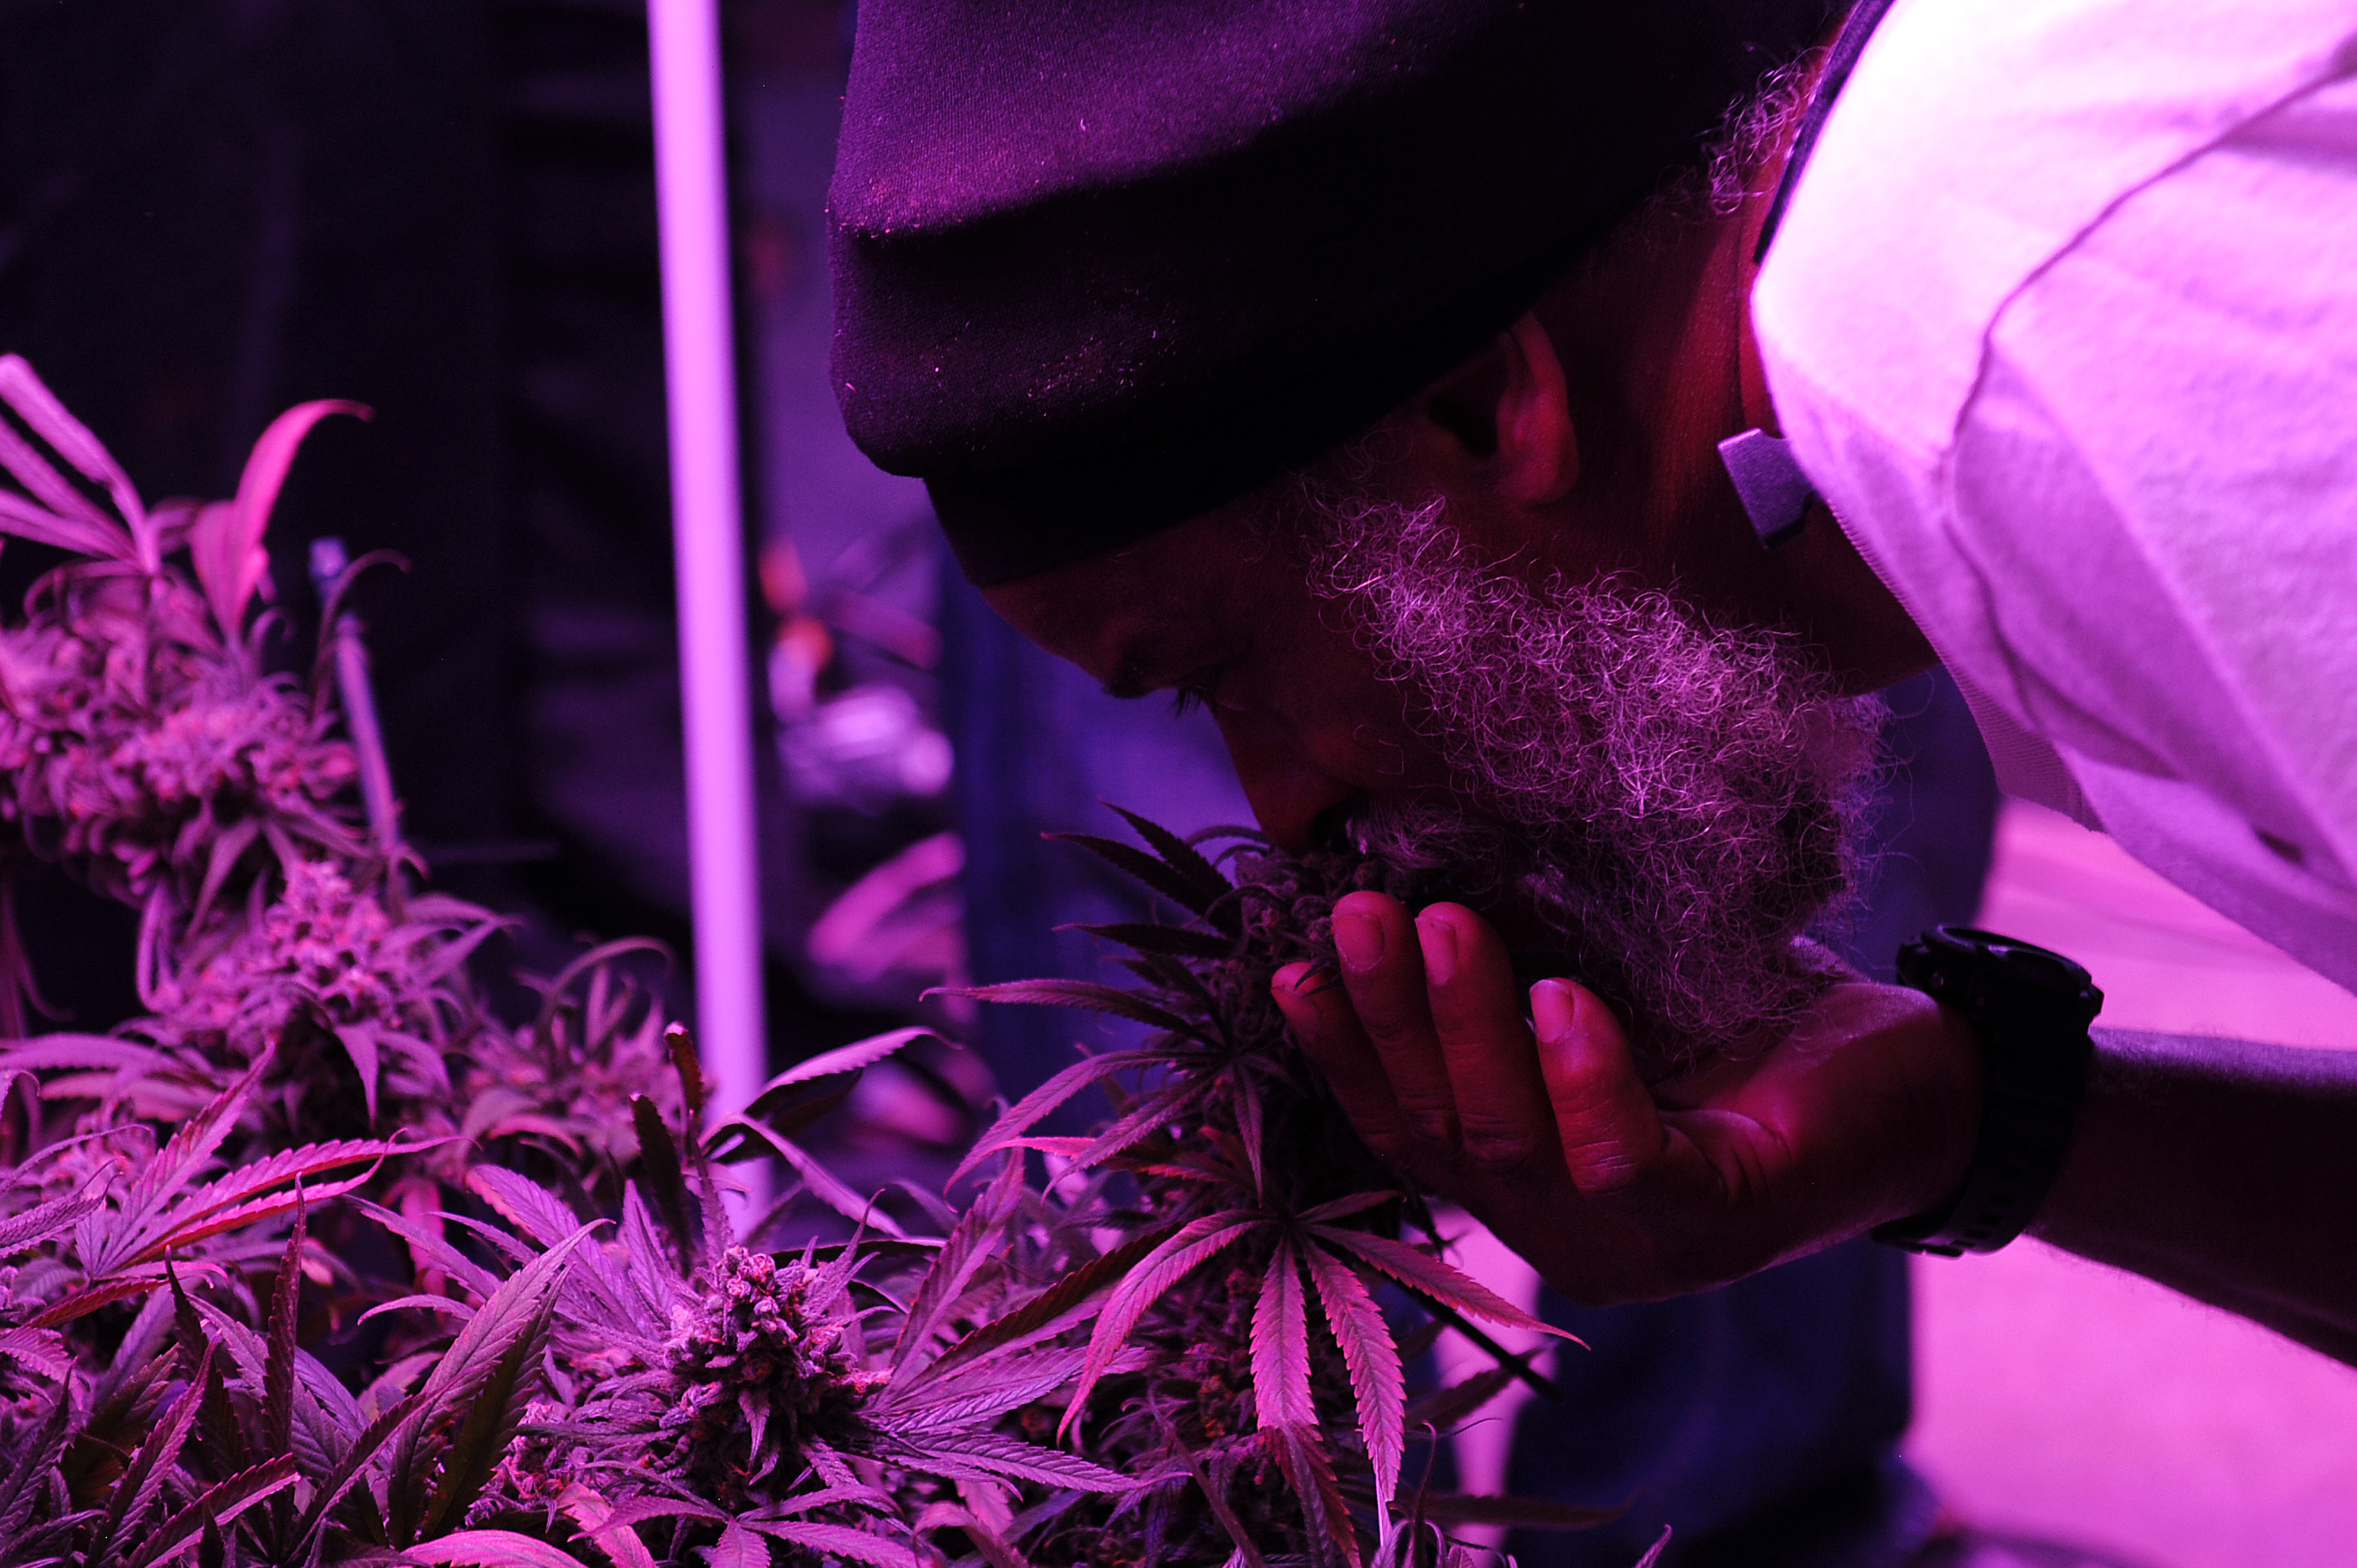 Black people and cannabis